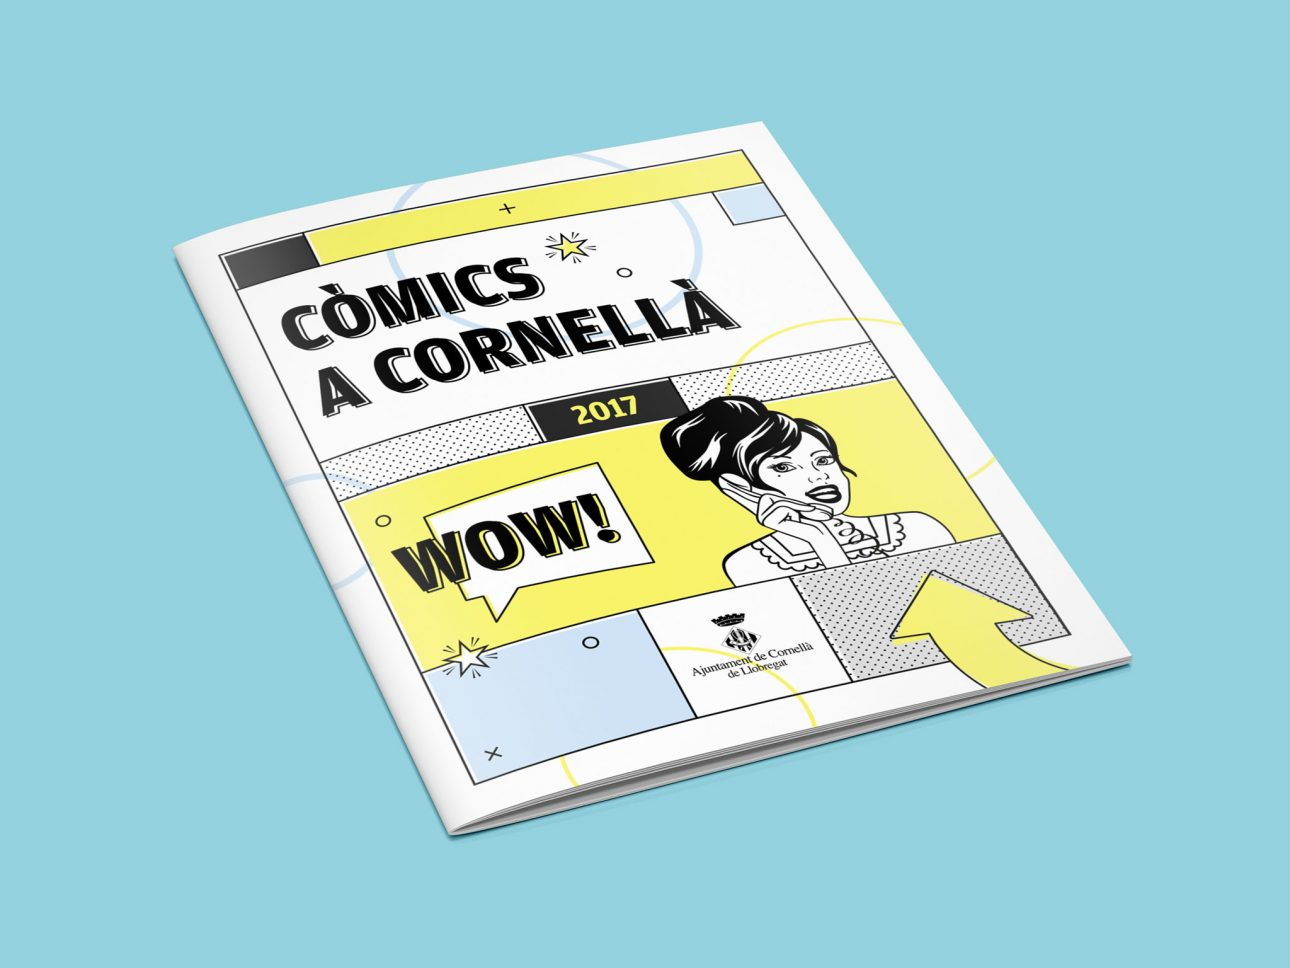 SD_COMIC-A-CORNELLA_1